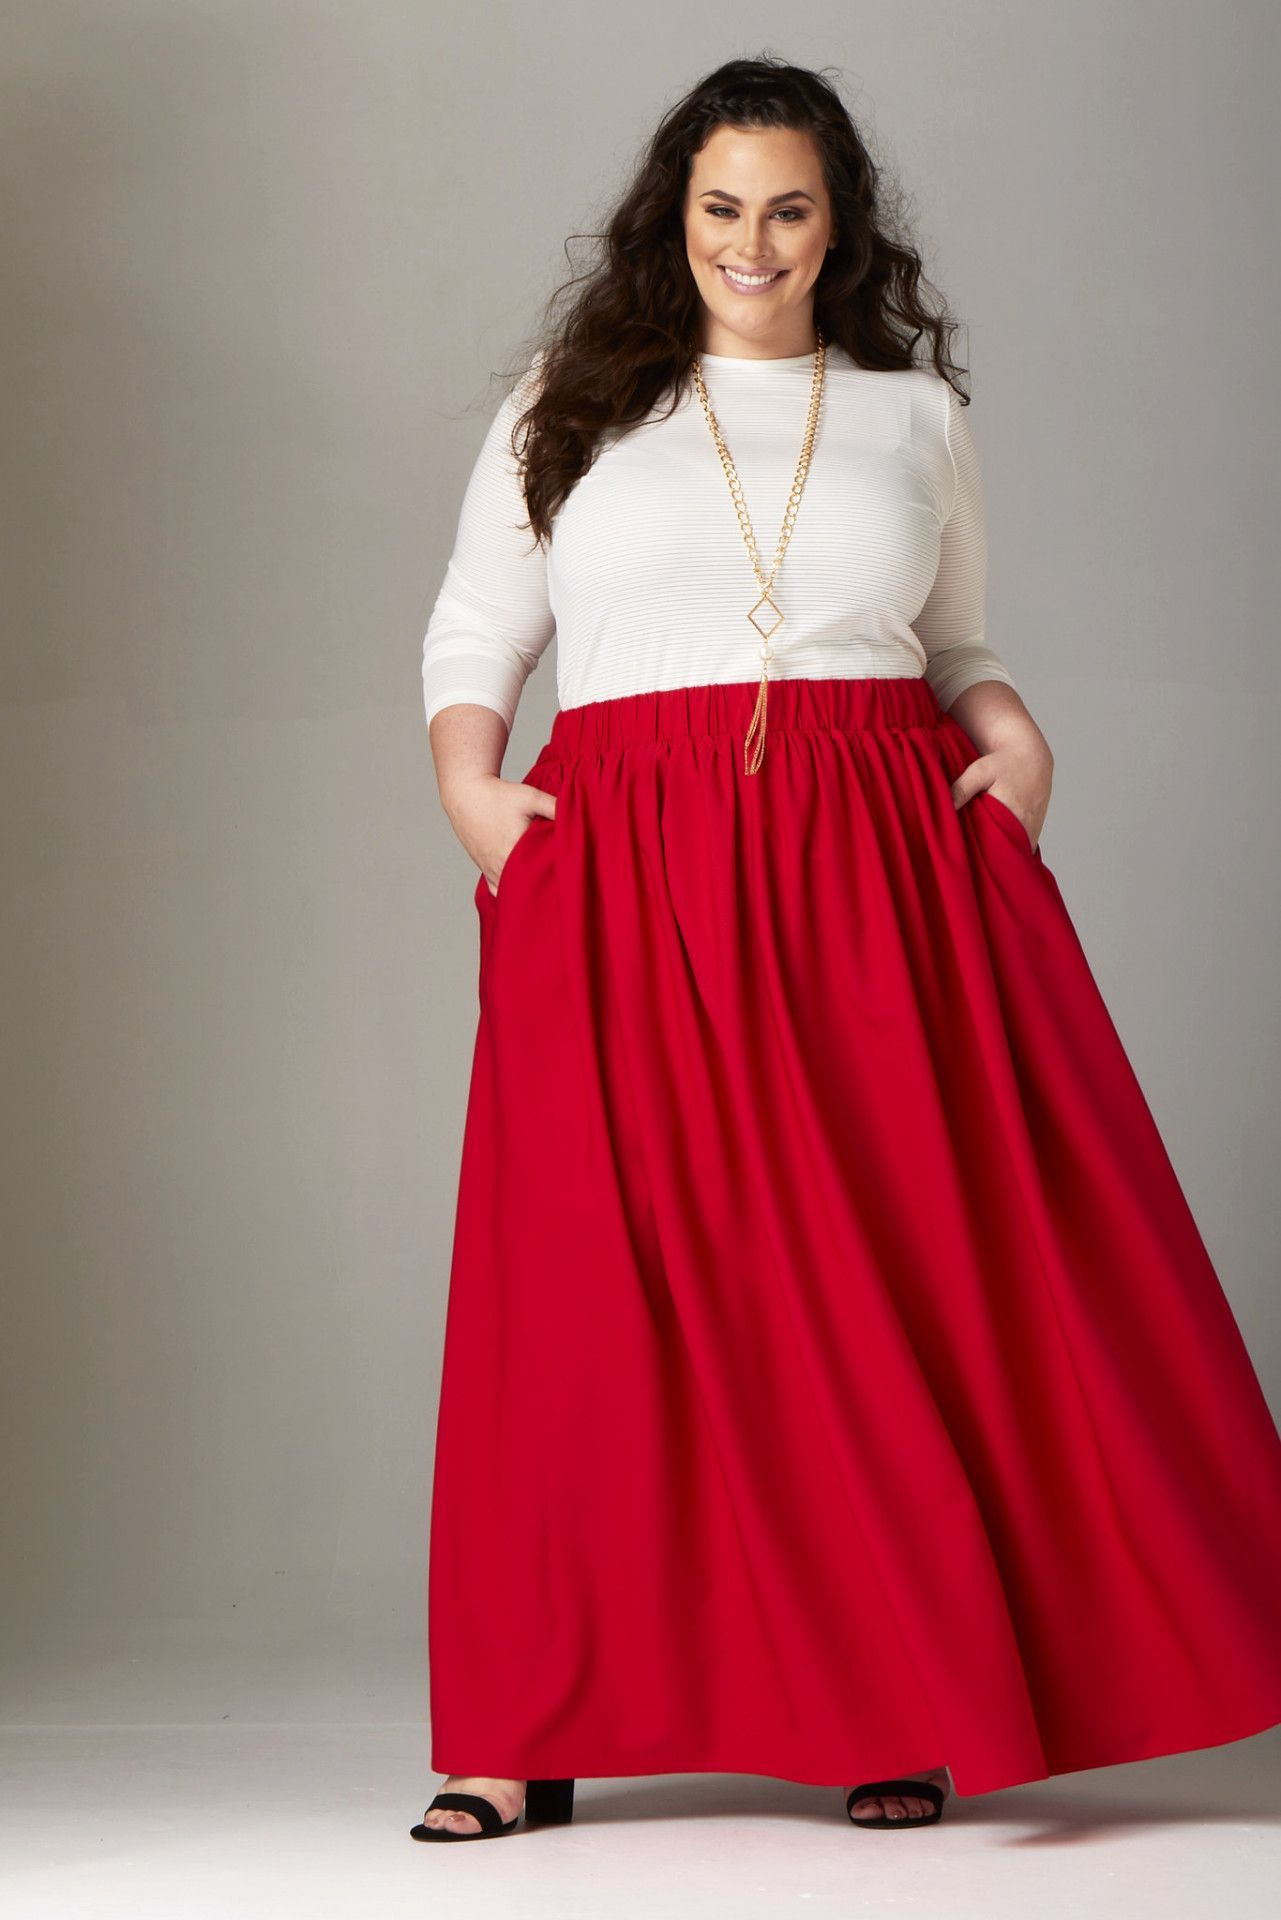 28b8260ec8 Plus Size Clothing for Women - Twirl Maxi Skirt w/ Pockets - True Red -  Society+ - Society Plus - Buy Online Now! - 2